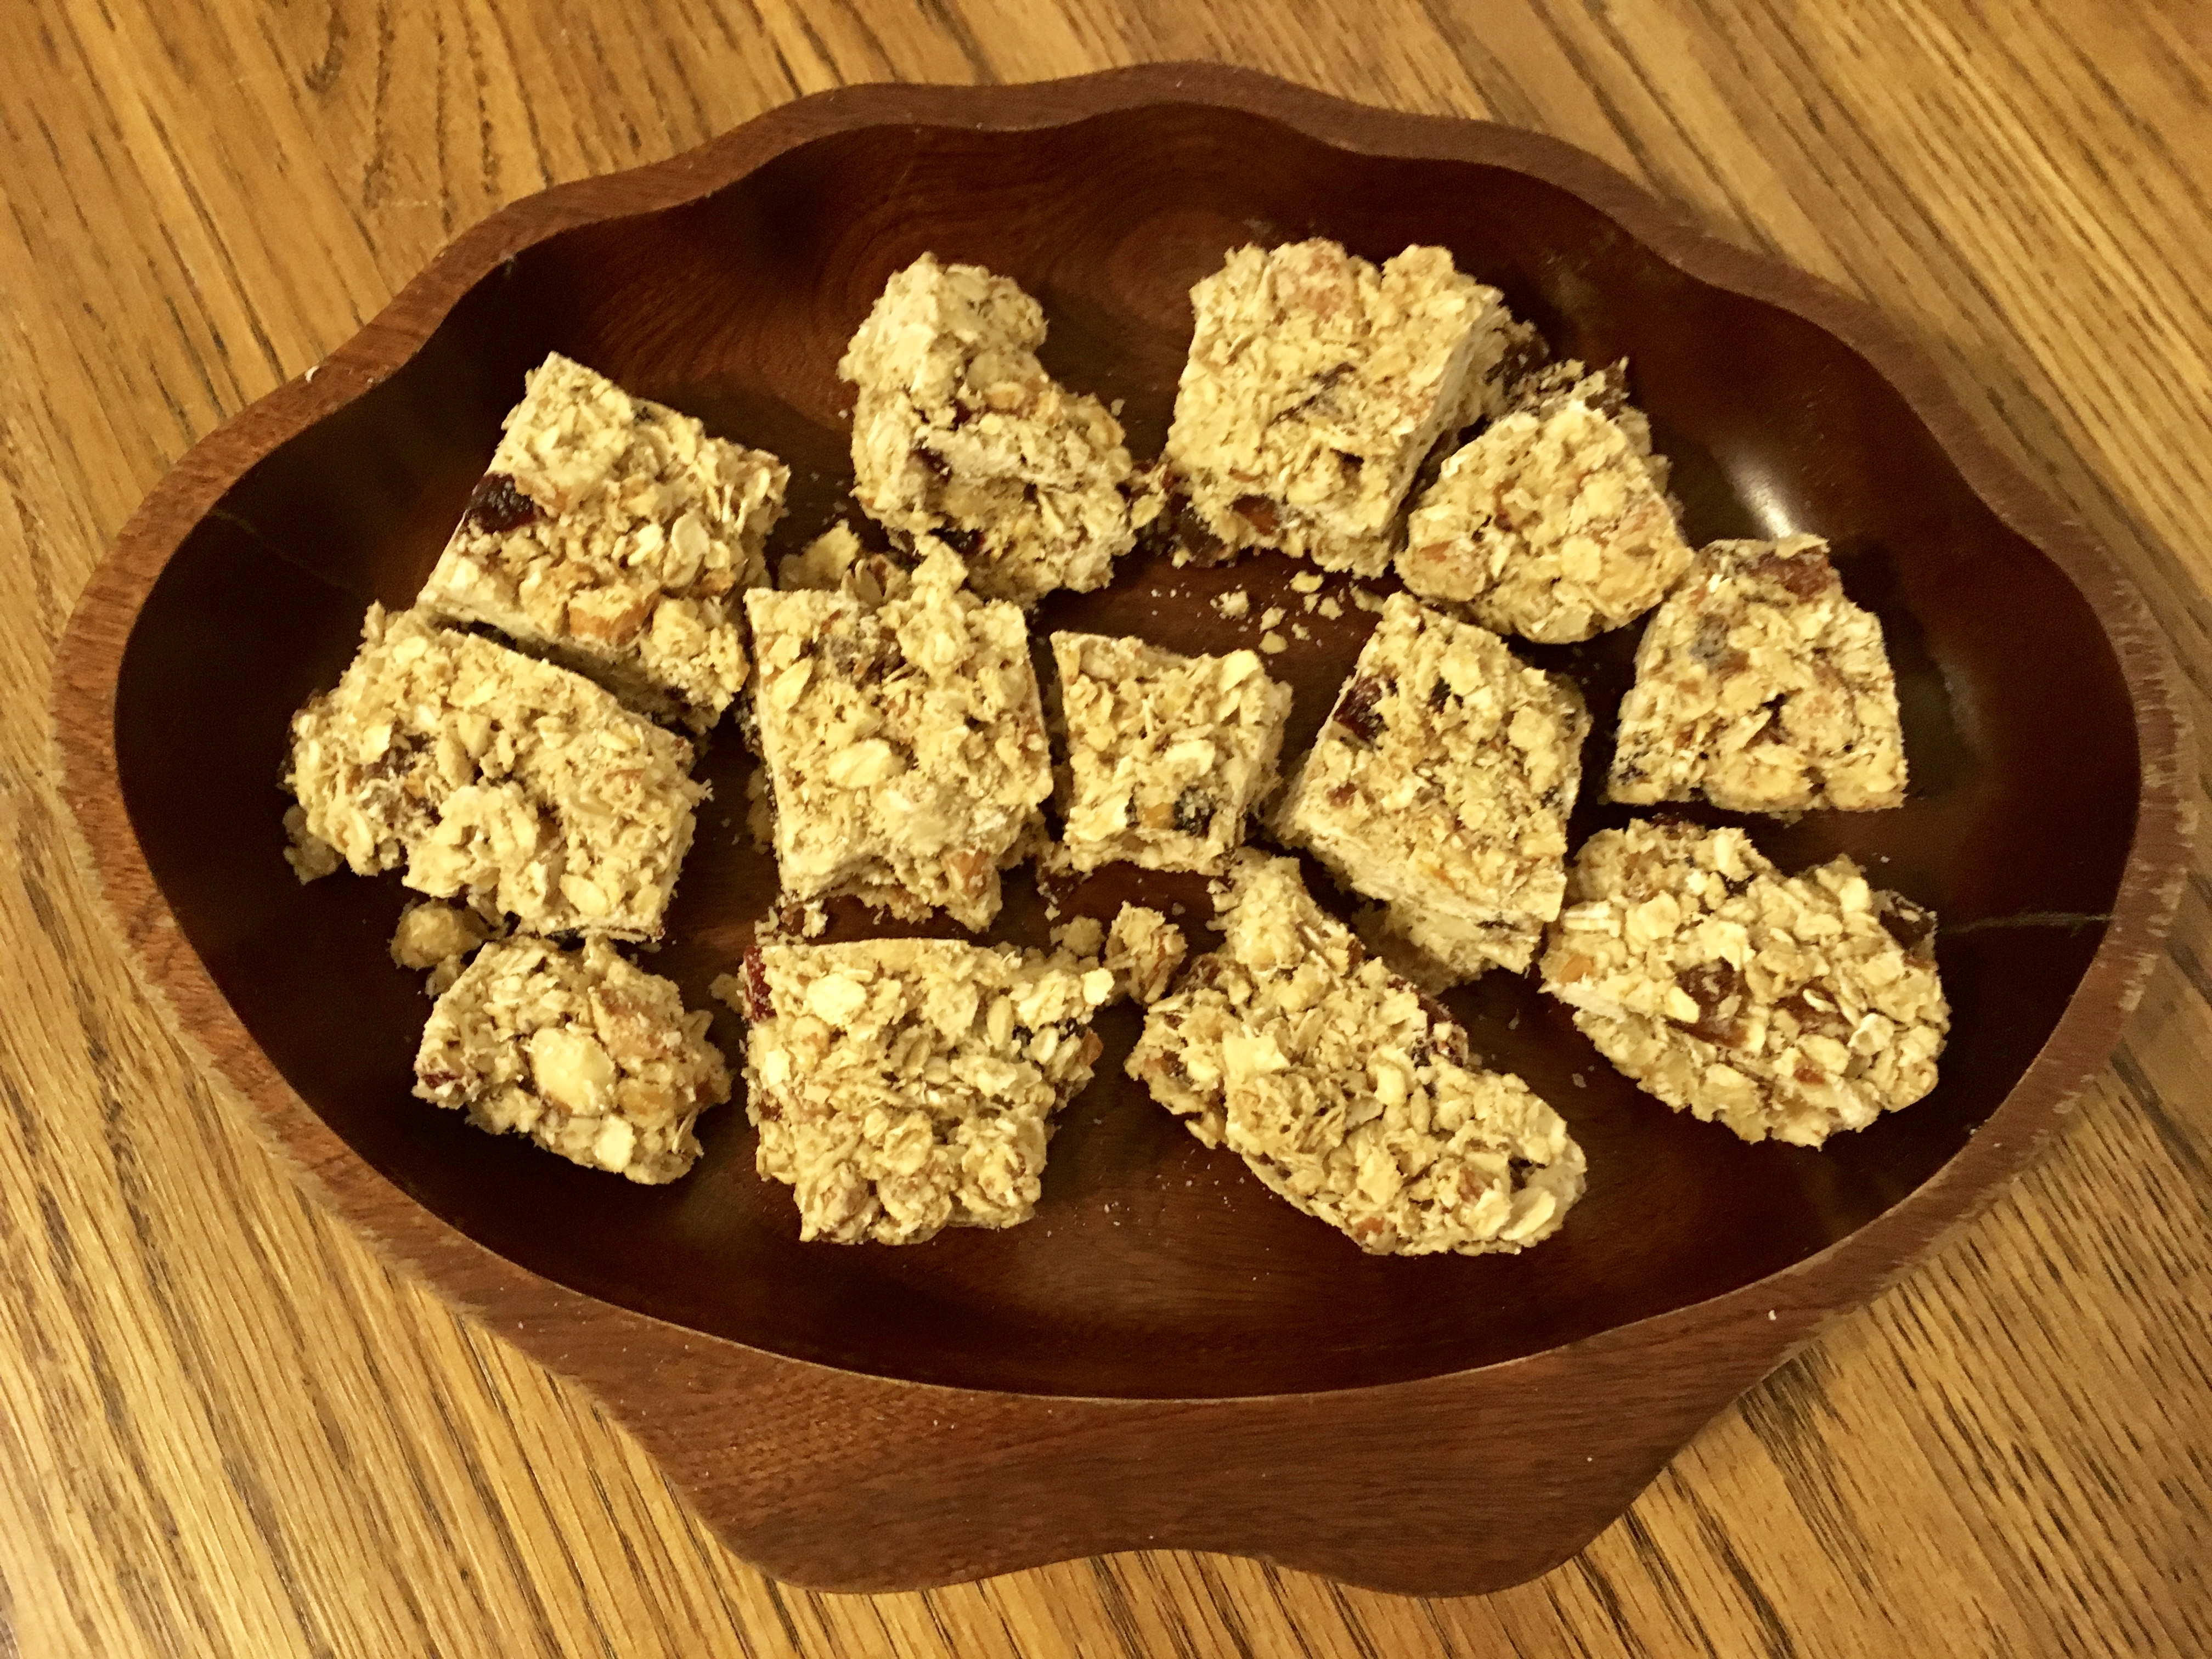 Kids can easily make yummy organic granola bars for a great breakfast, dessert, or snack. Homemade organic granola with dried fruit and nuts is packed with ...